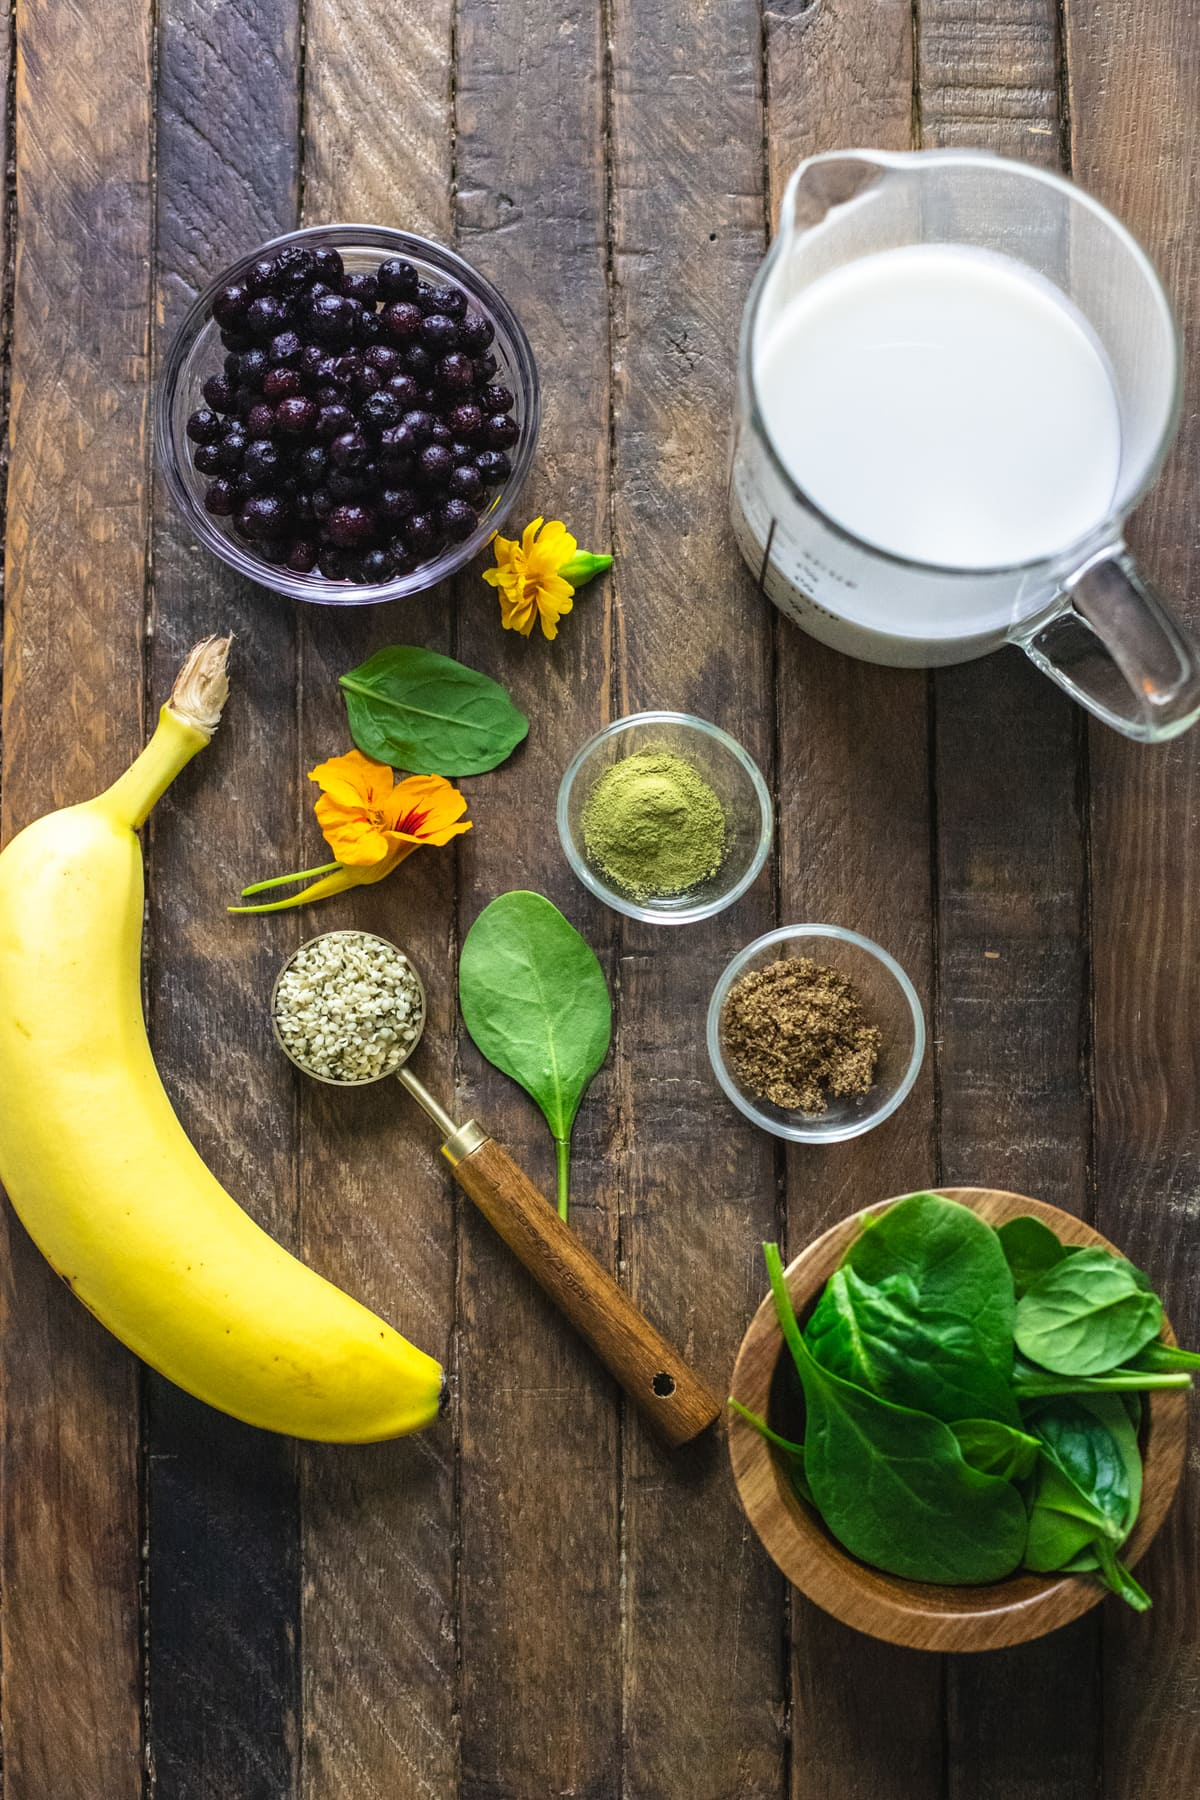 Ingredients for a blueberry spinach smoothie arranged on a wooden background.